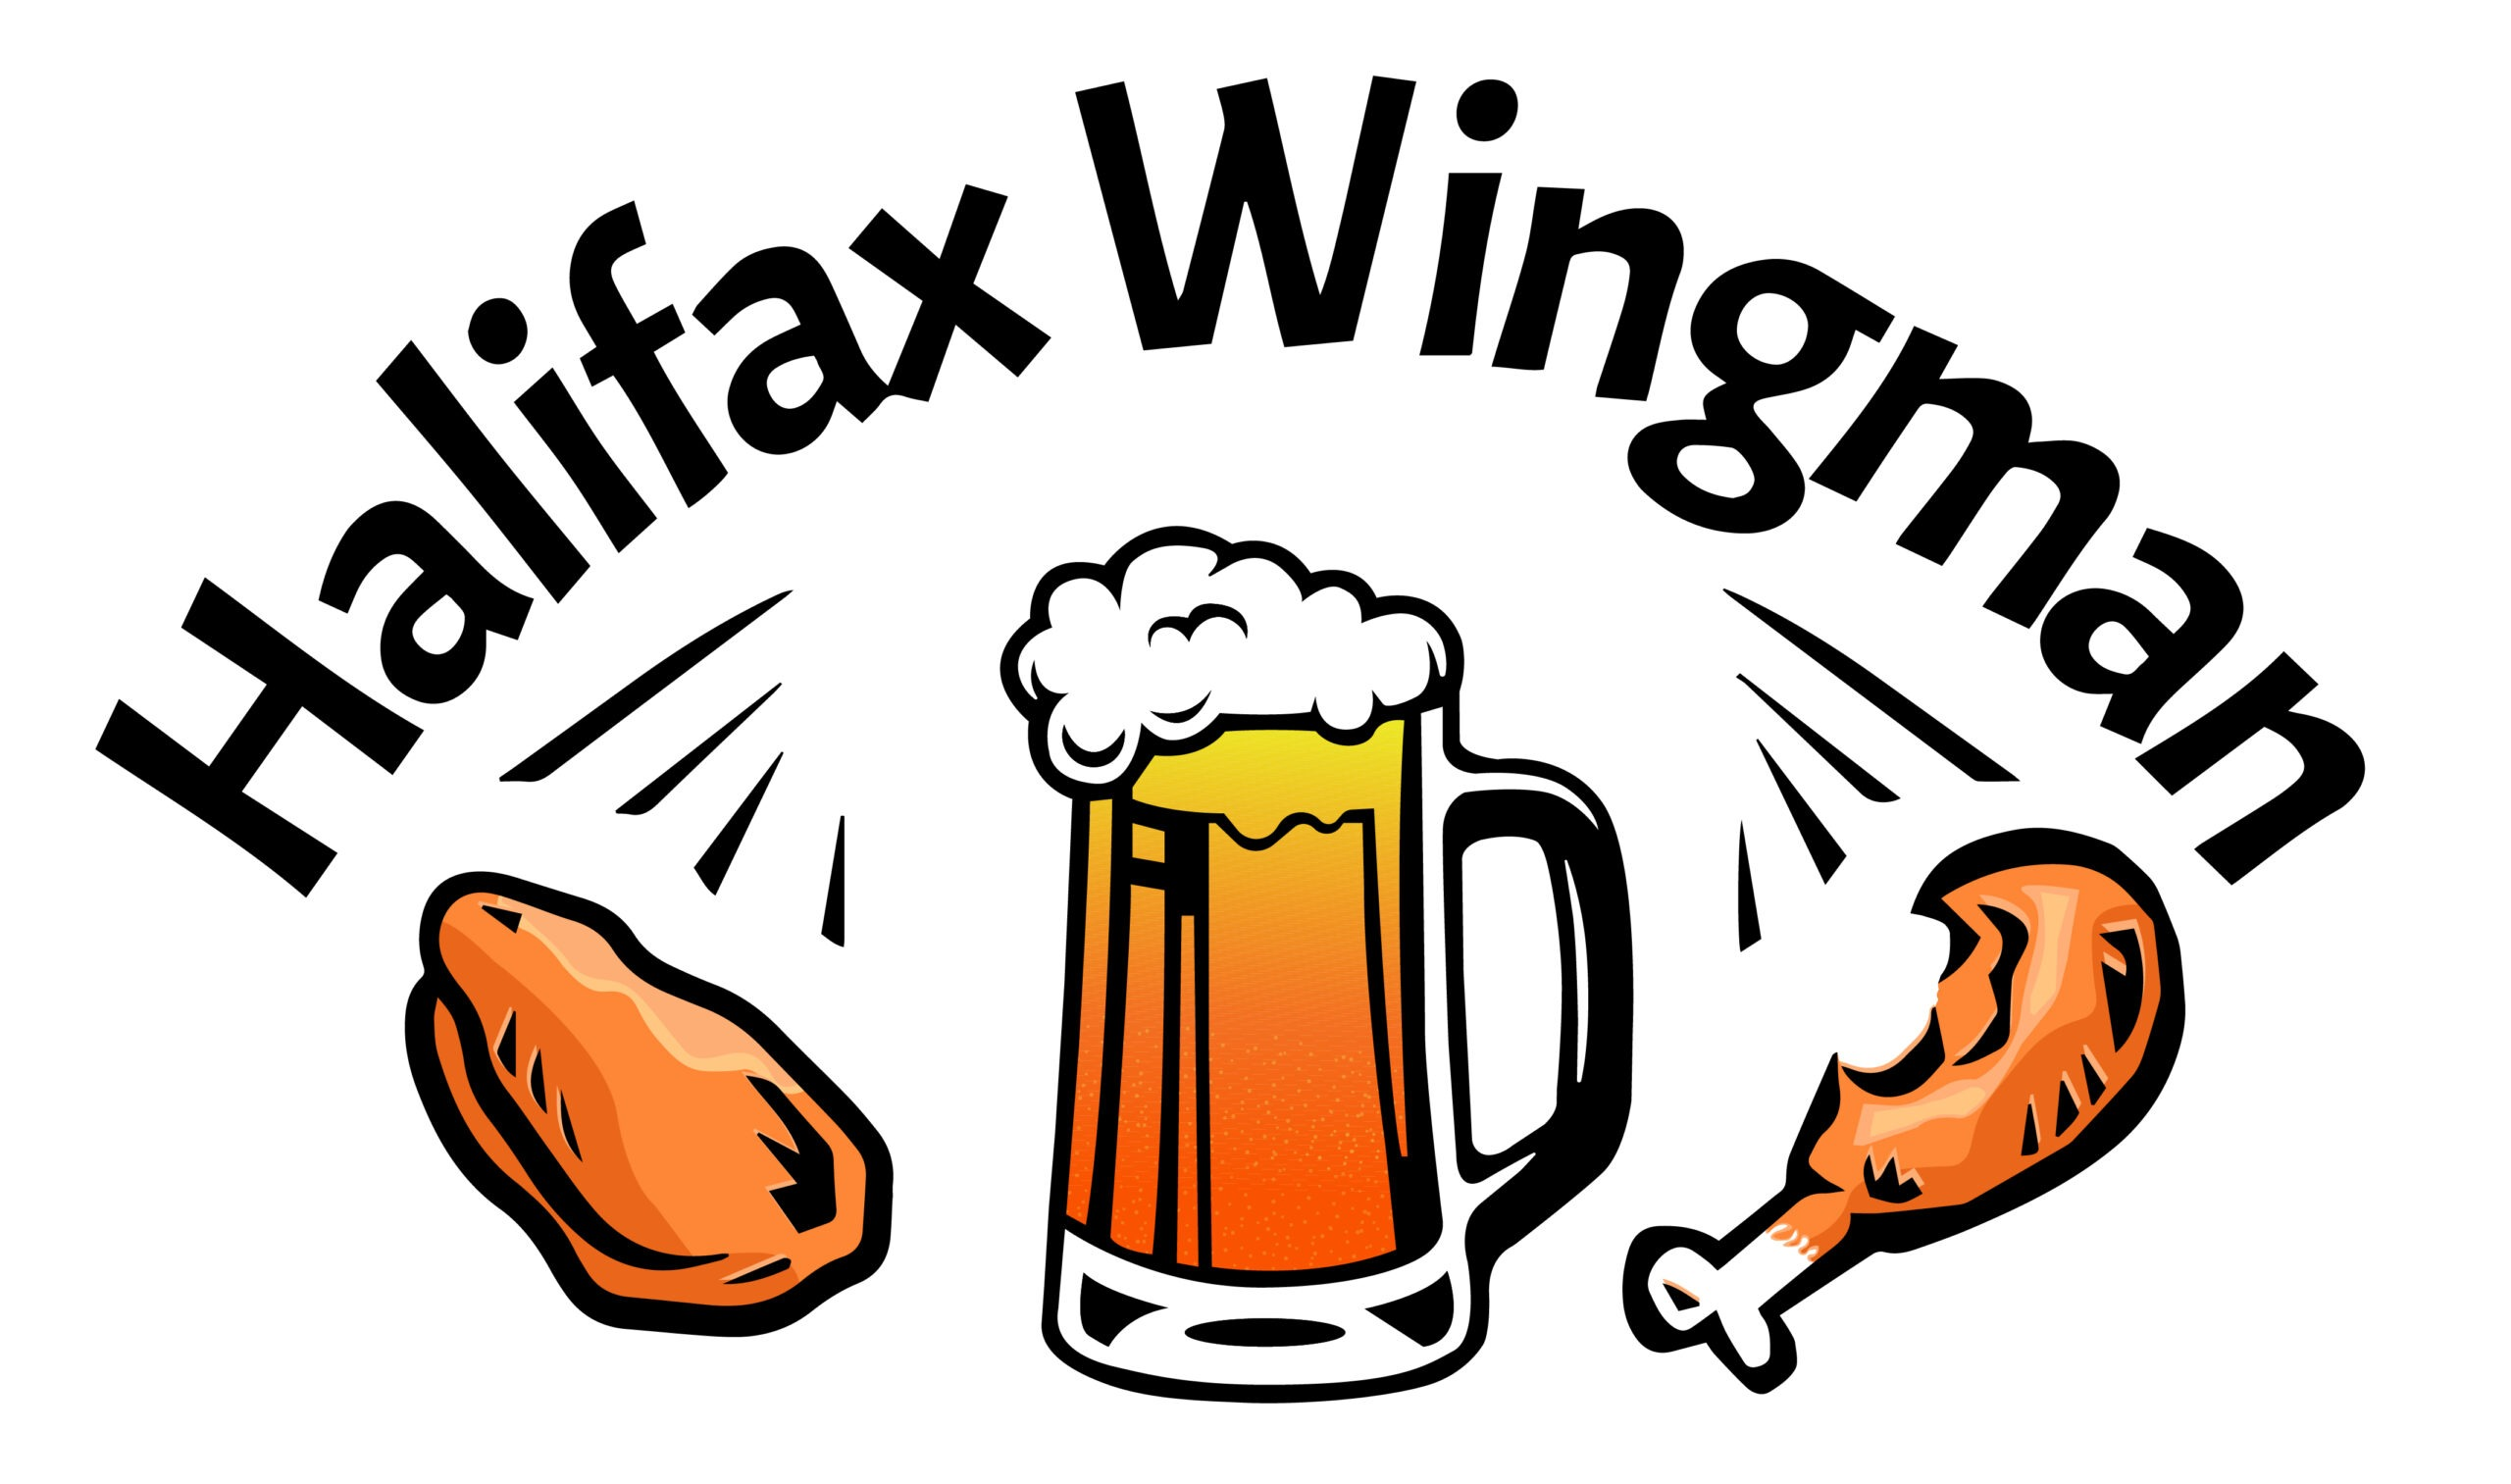 Halifax Wingman